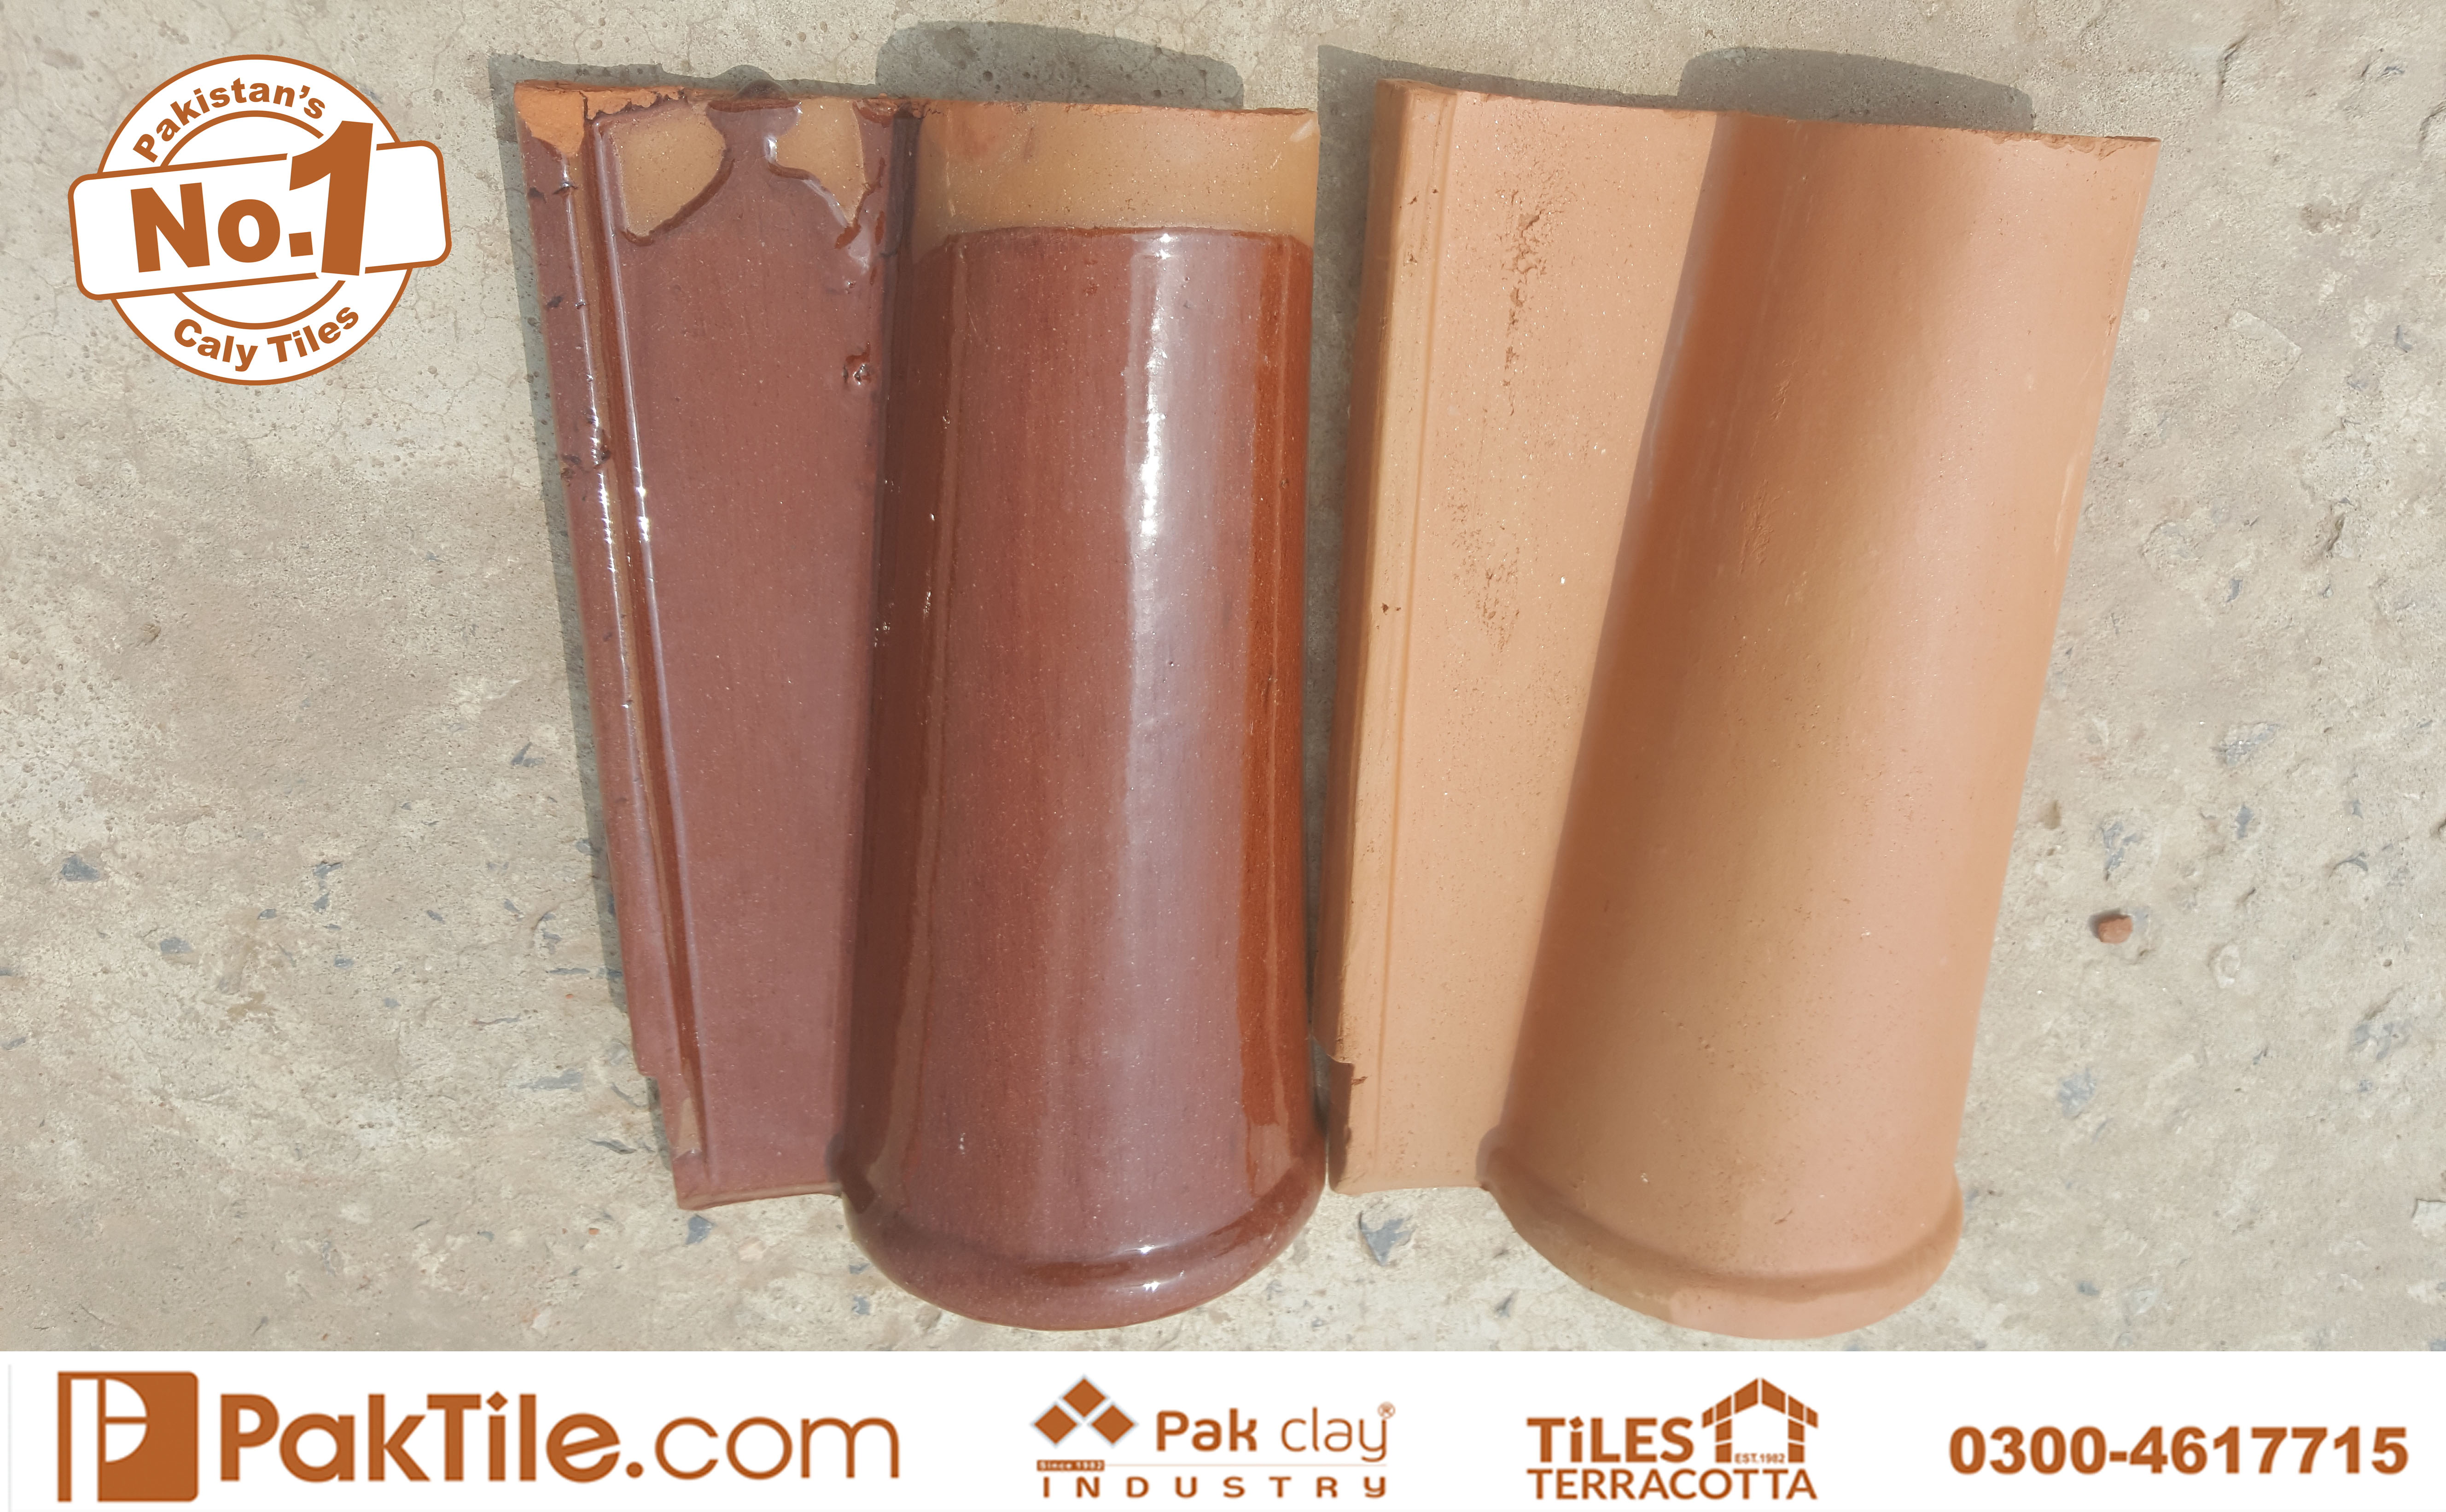 6 Pak clay terracotta roof shingles materials how much does a 12x12 ceramic tile weight images